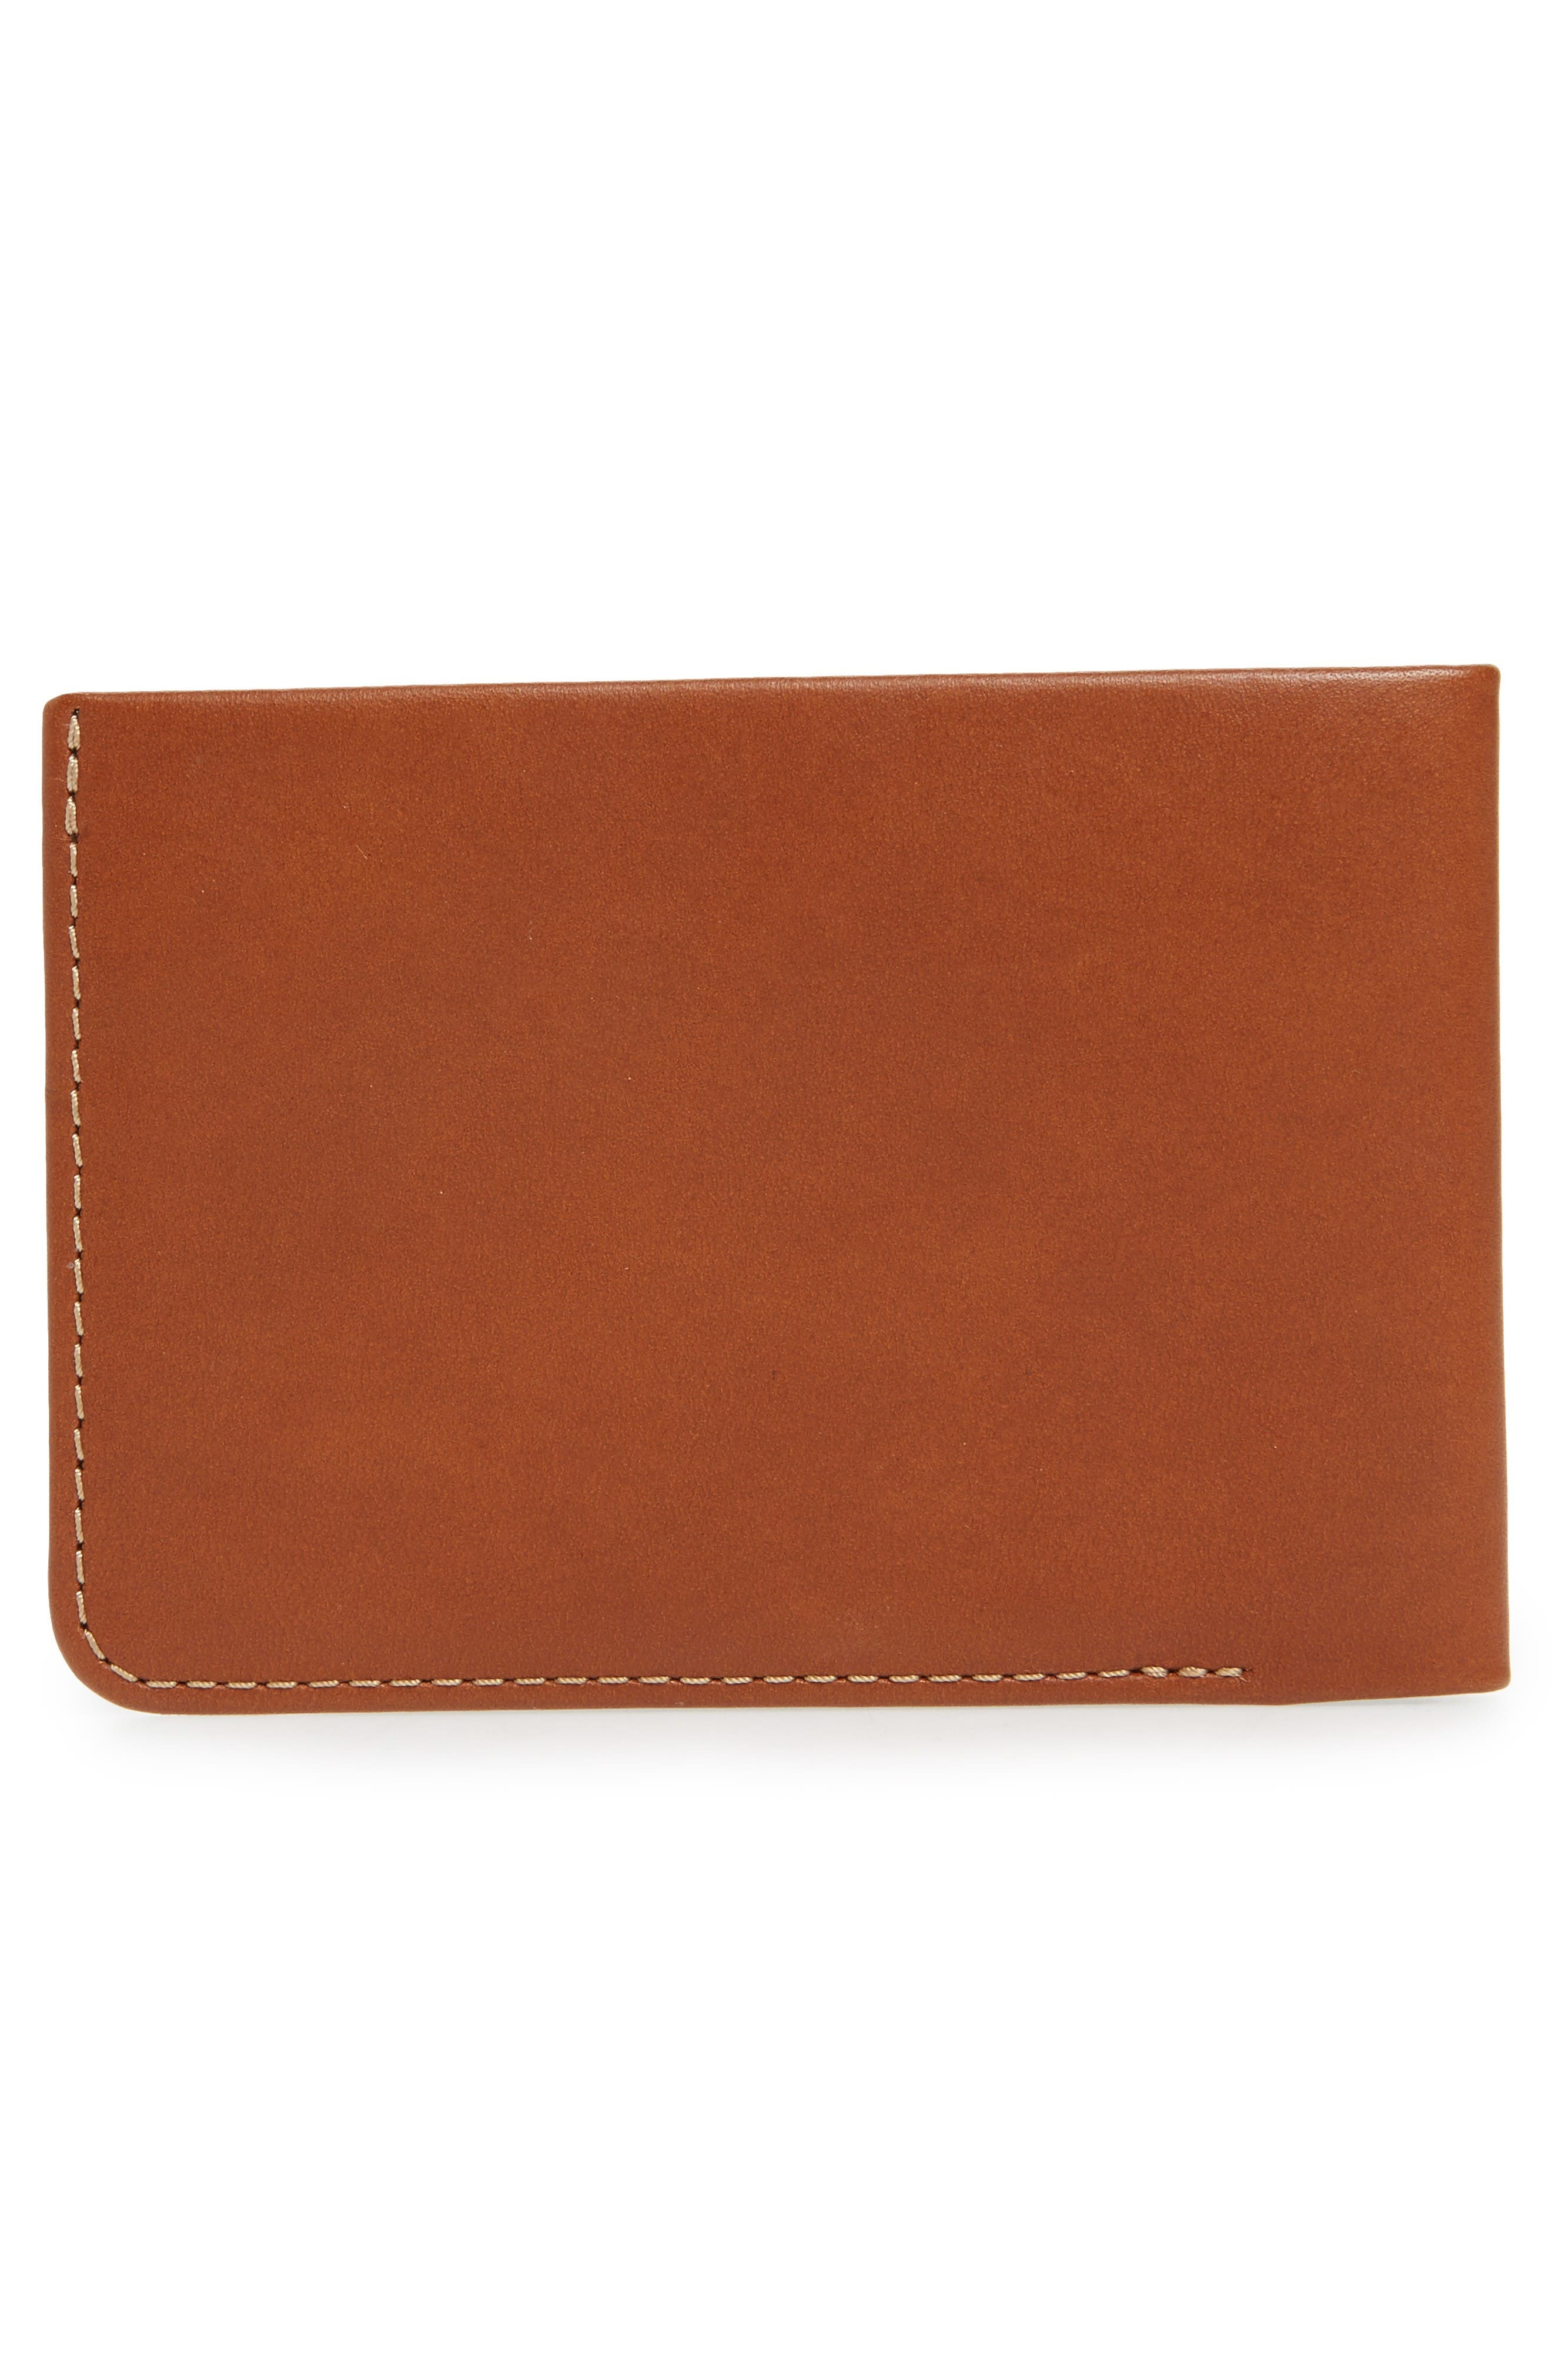 Alternate Image 3  - Bellroy Low Down Leather Wallet